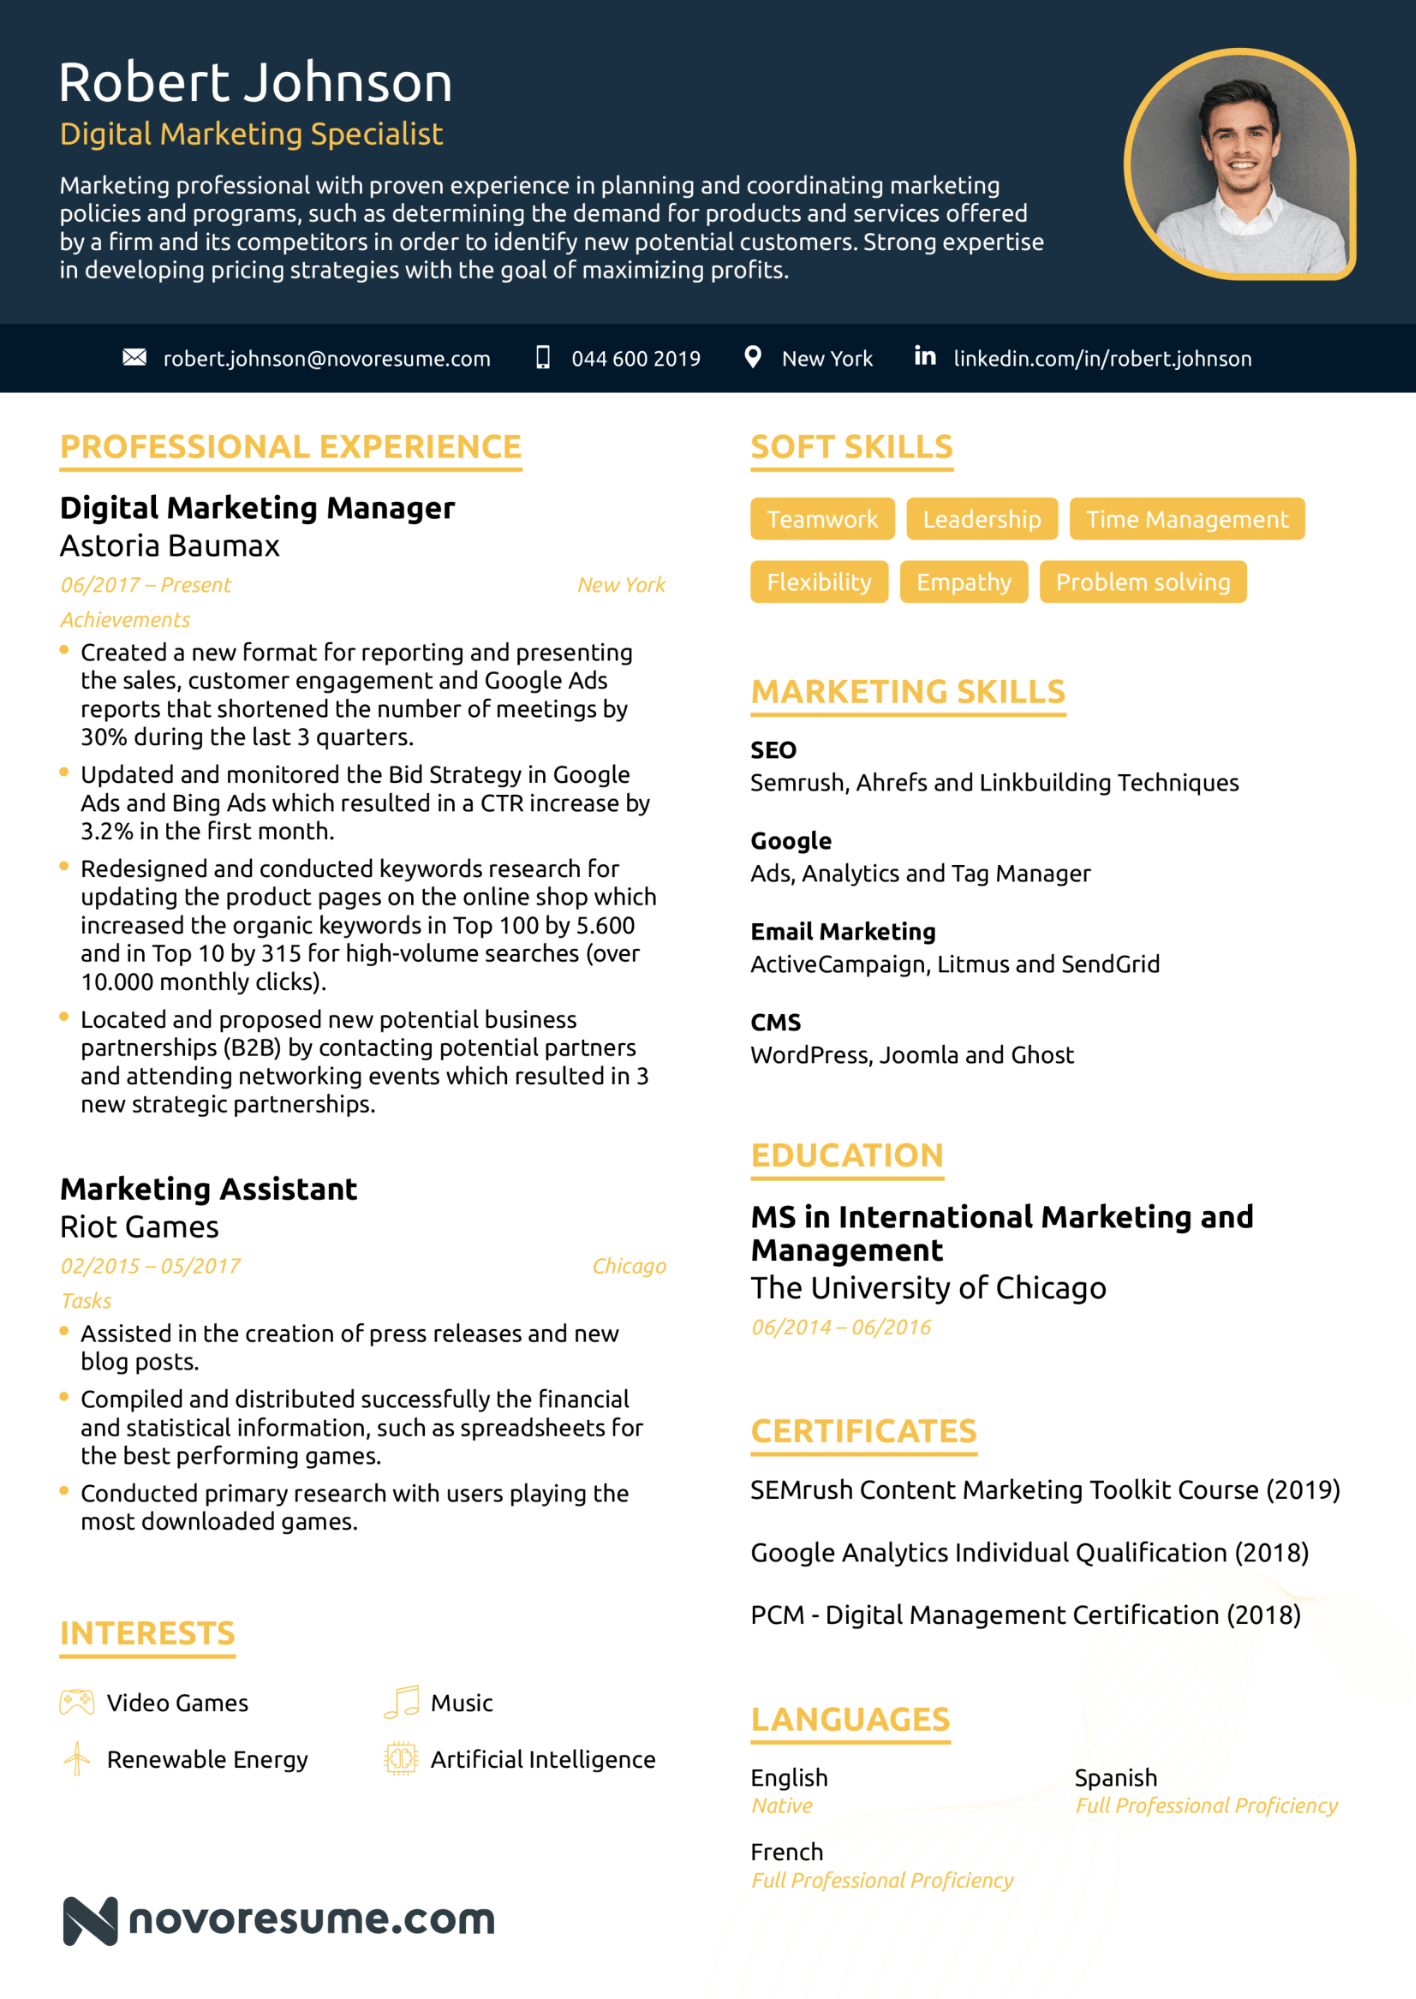 Executive Resume Templates 2020 in 2020 Marketing resume